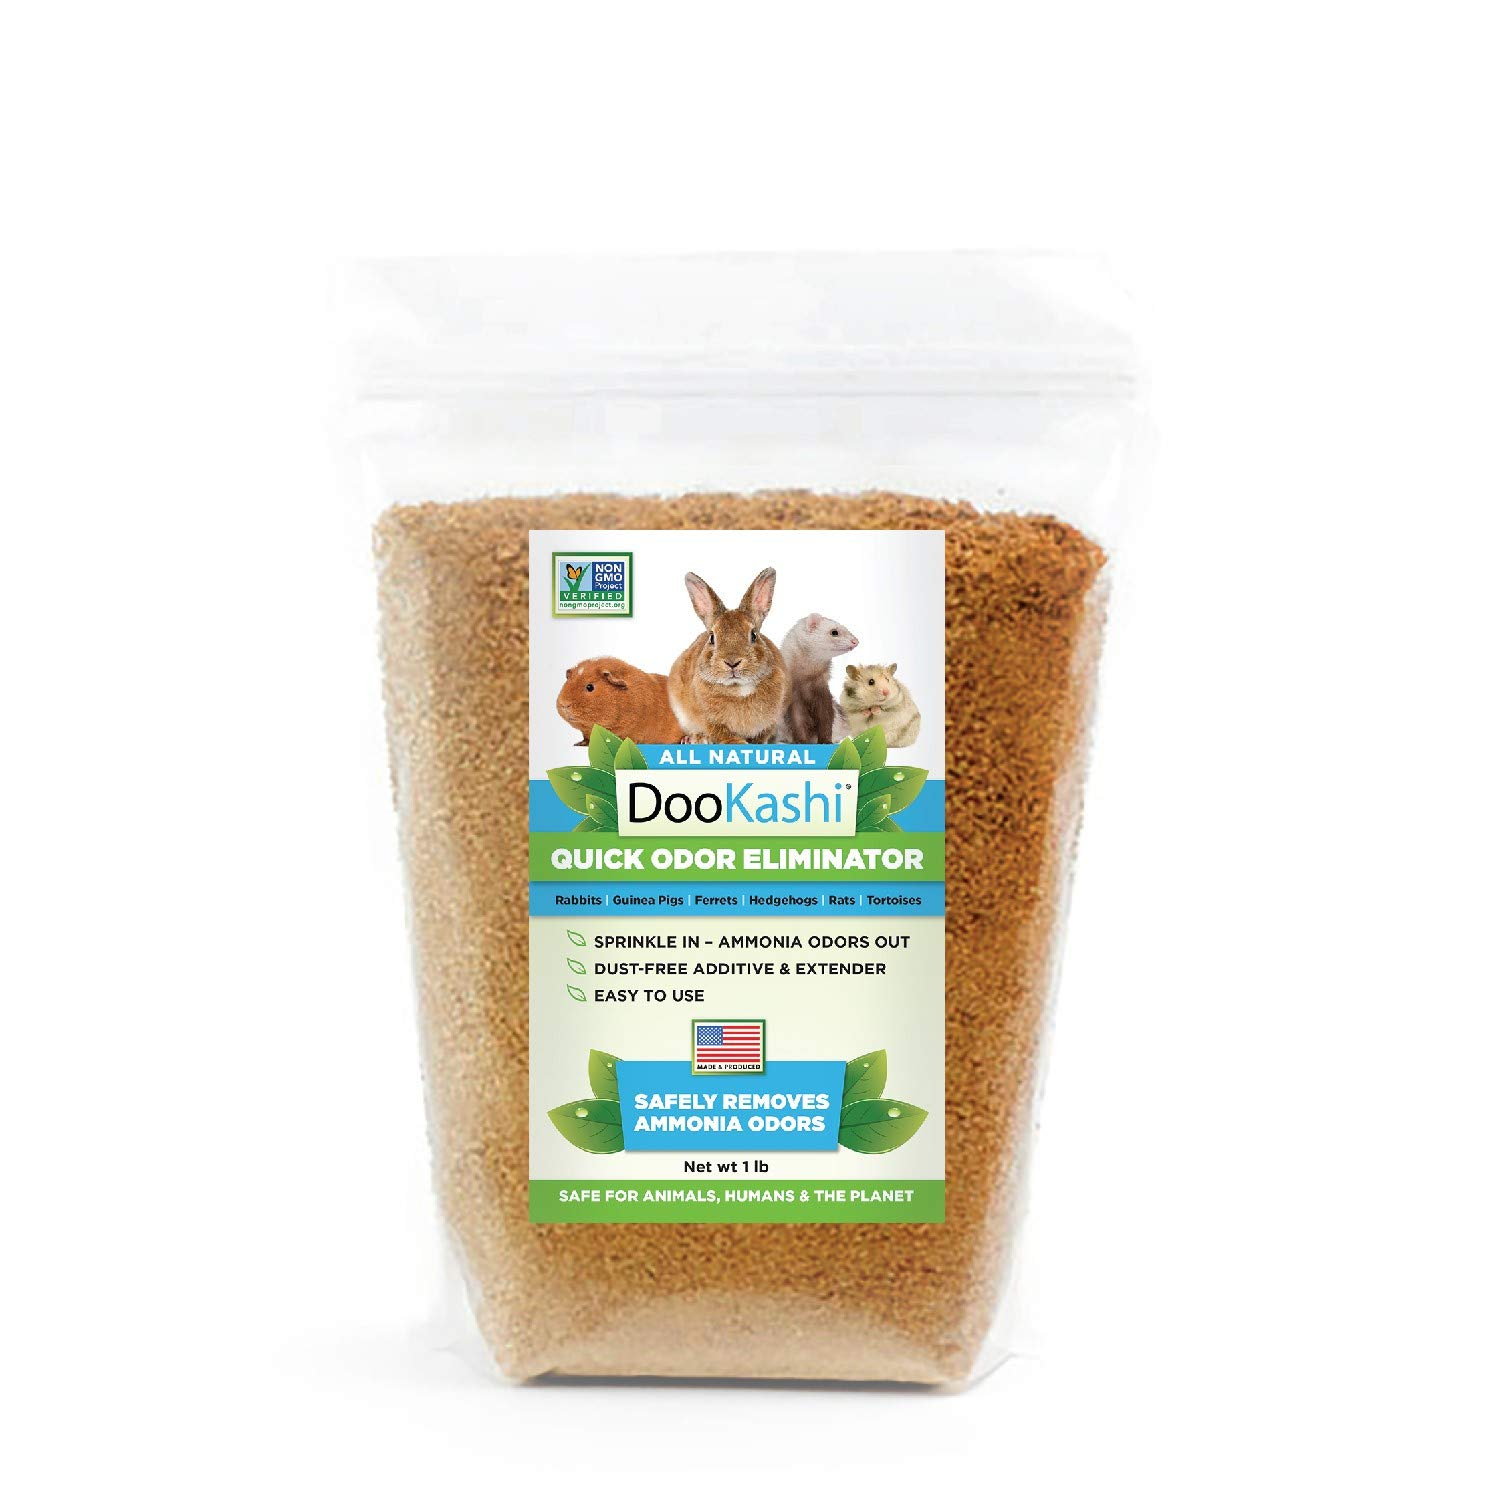 DooKashi Guinea Pig Bedding Odor Eliminator and Guinea Pig Litter Box Deodorizer - Probiotic Powered Natural Litter Additive Extender and Small Pet Odor Remover - Non-GMO, Non-Toxic, Eco-Friendly, 1lb by DooKashi